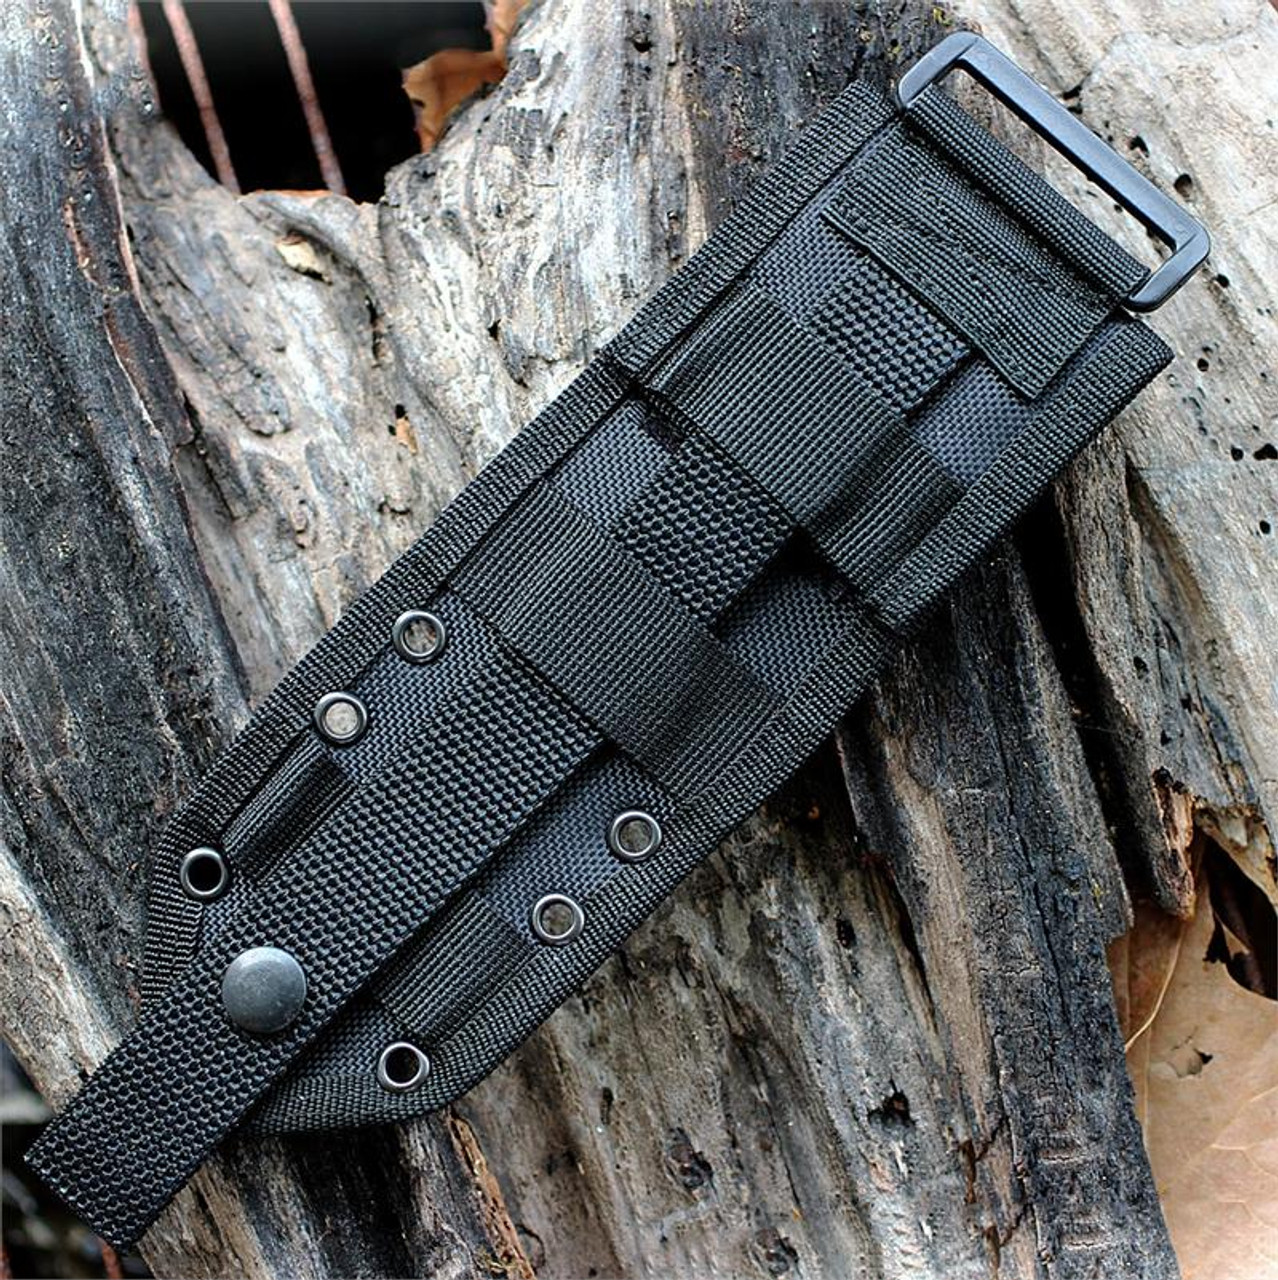 ESEE Jump-Proof MOLLE Back Plate for ESEE-3 and ESEE-4 Molded Sheath - Patent Pending